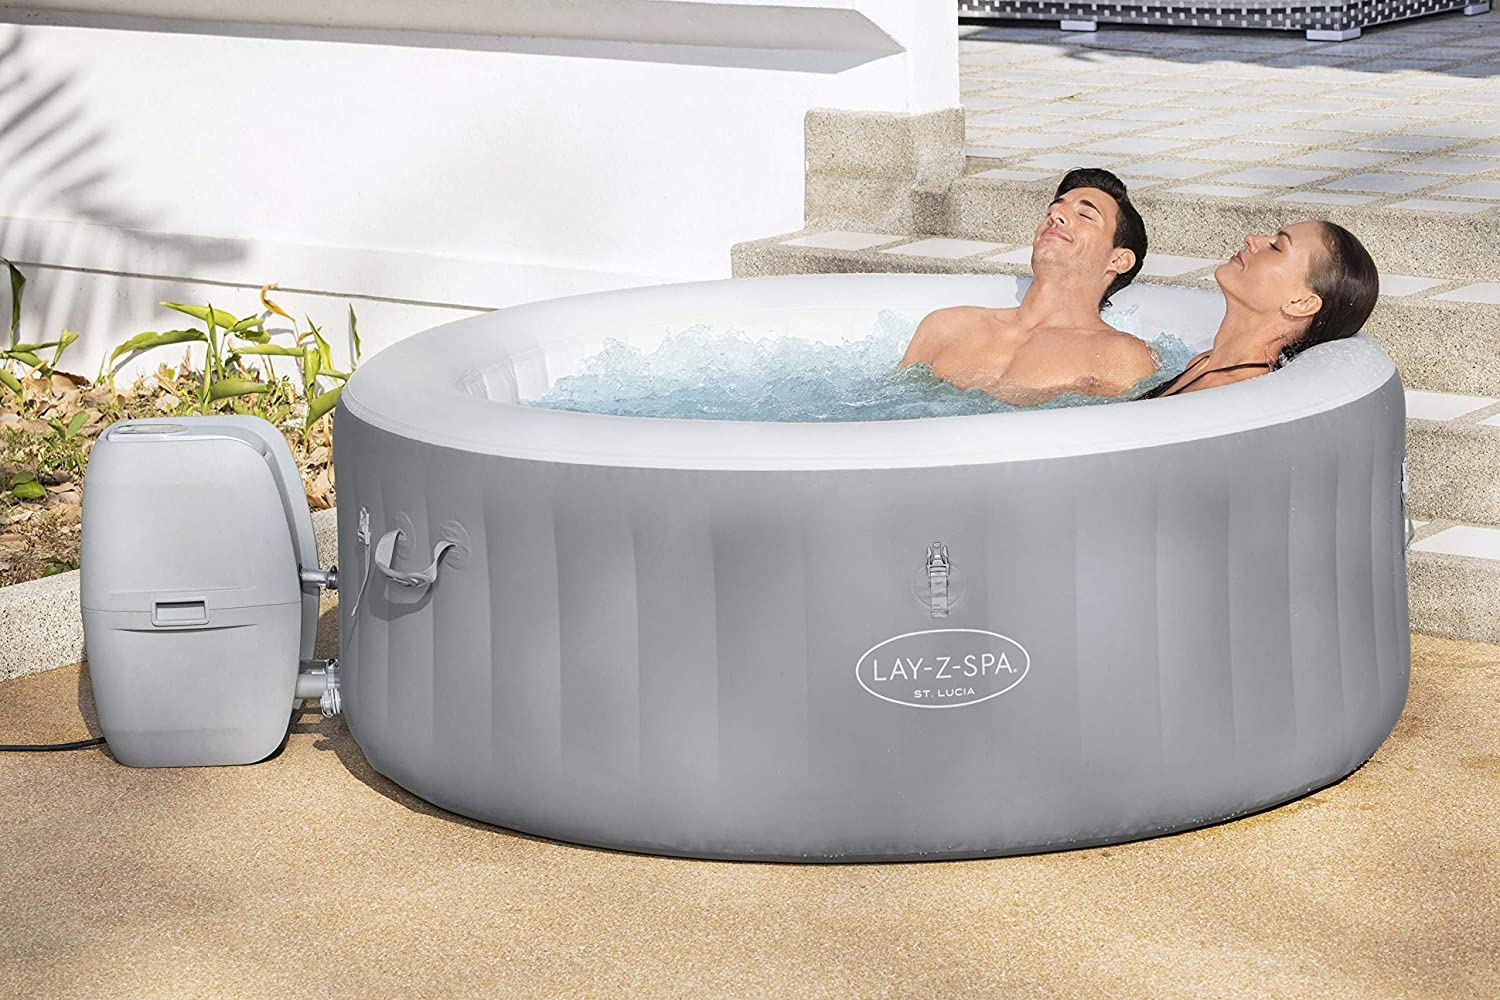 LAY-Z-SPA St Lucia